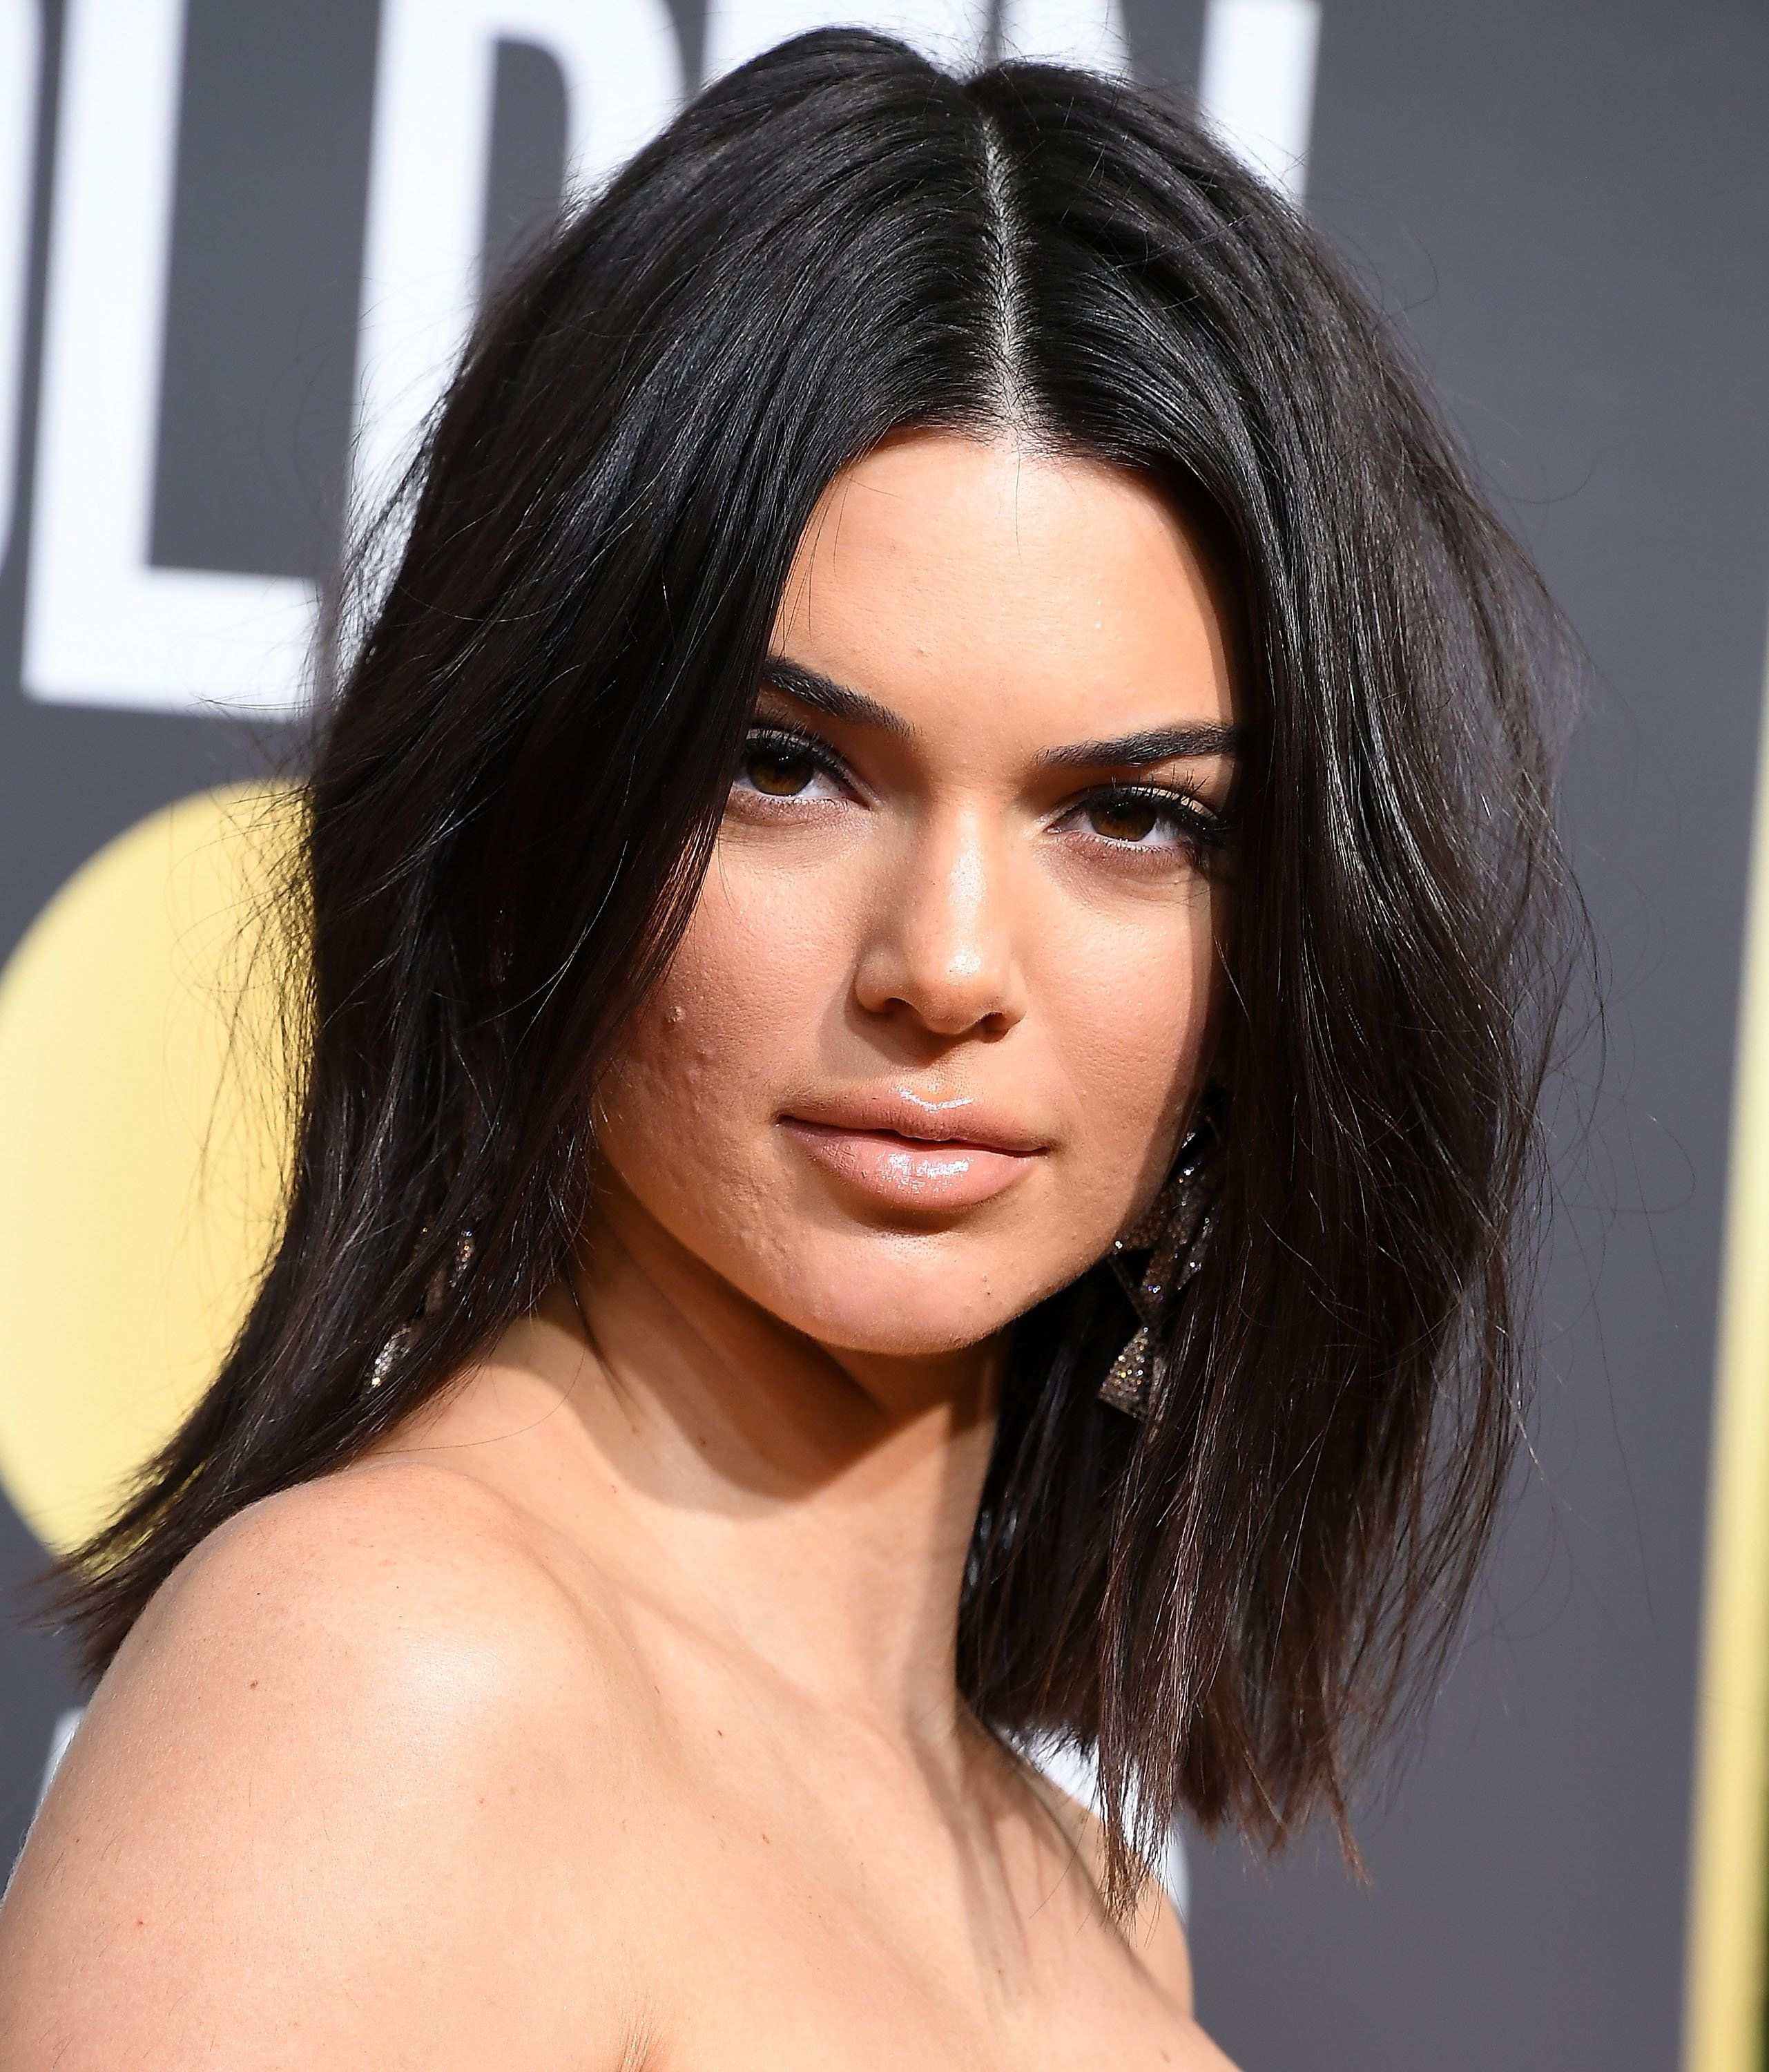 Watch Kendall Jenner Go Inside the Golden Globes